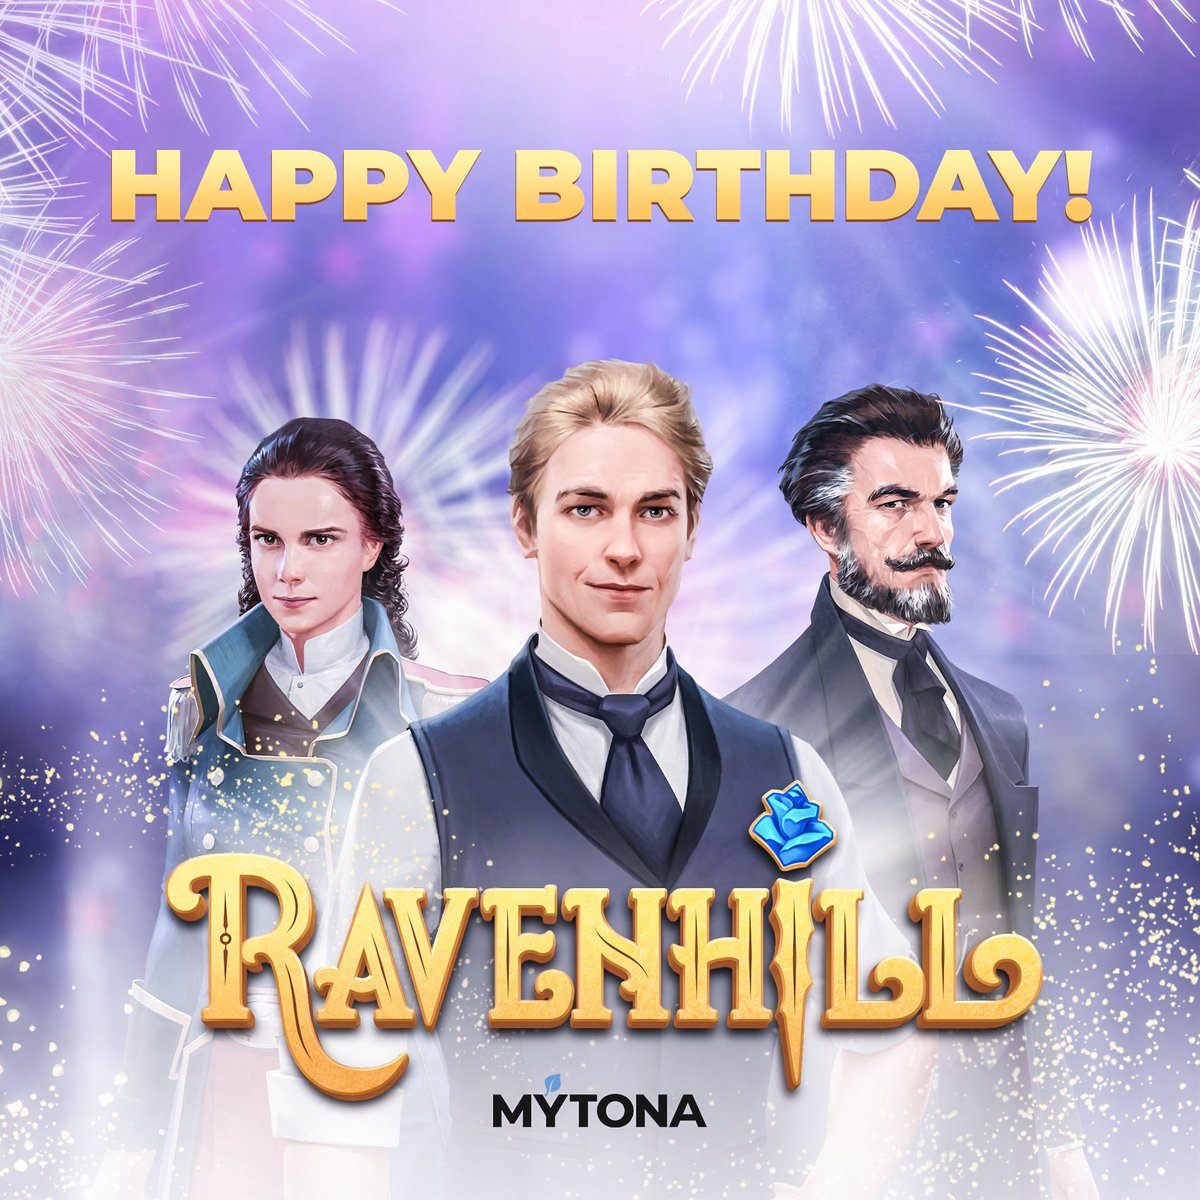 Today is one of the significant days for us - our game Ravenhill is 2 years old!🎂🎉 We wish the team to continue making magic with the same power and be inspired all the time. We also thank our players for the love and support day by day!❤️ #Ravenhill #mytona https://t.co/4YidNnRlEe